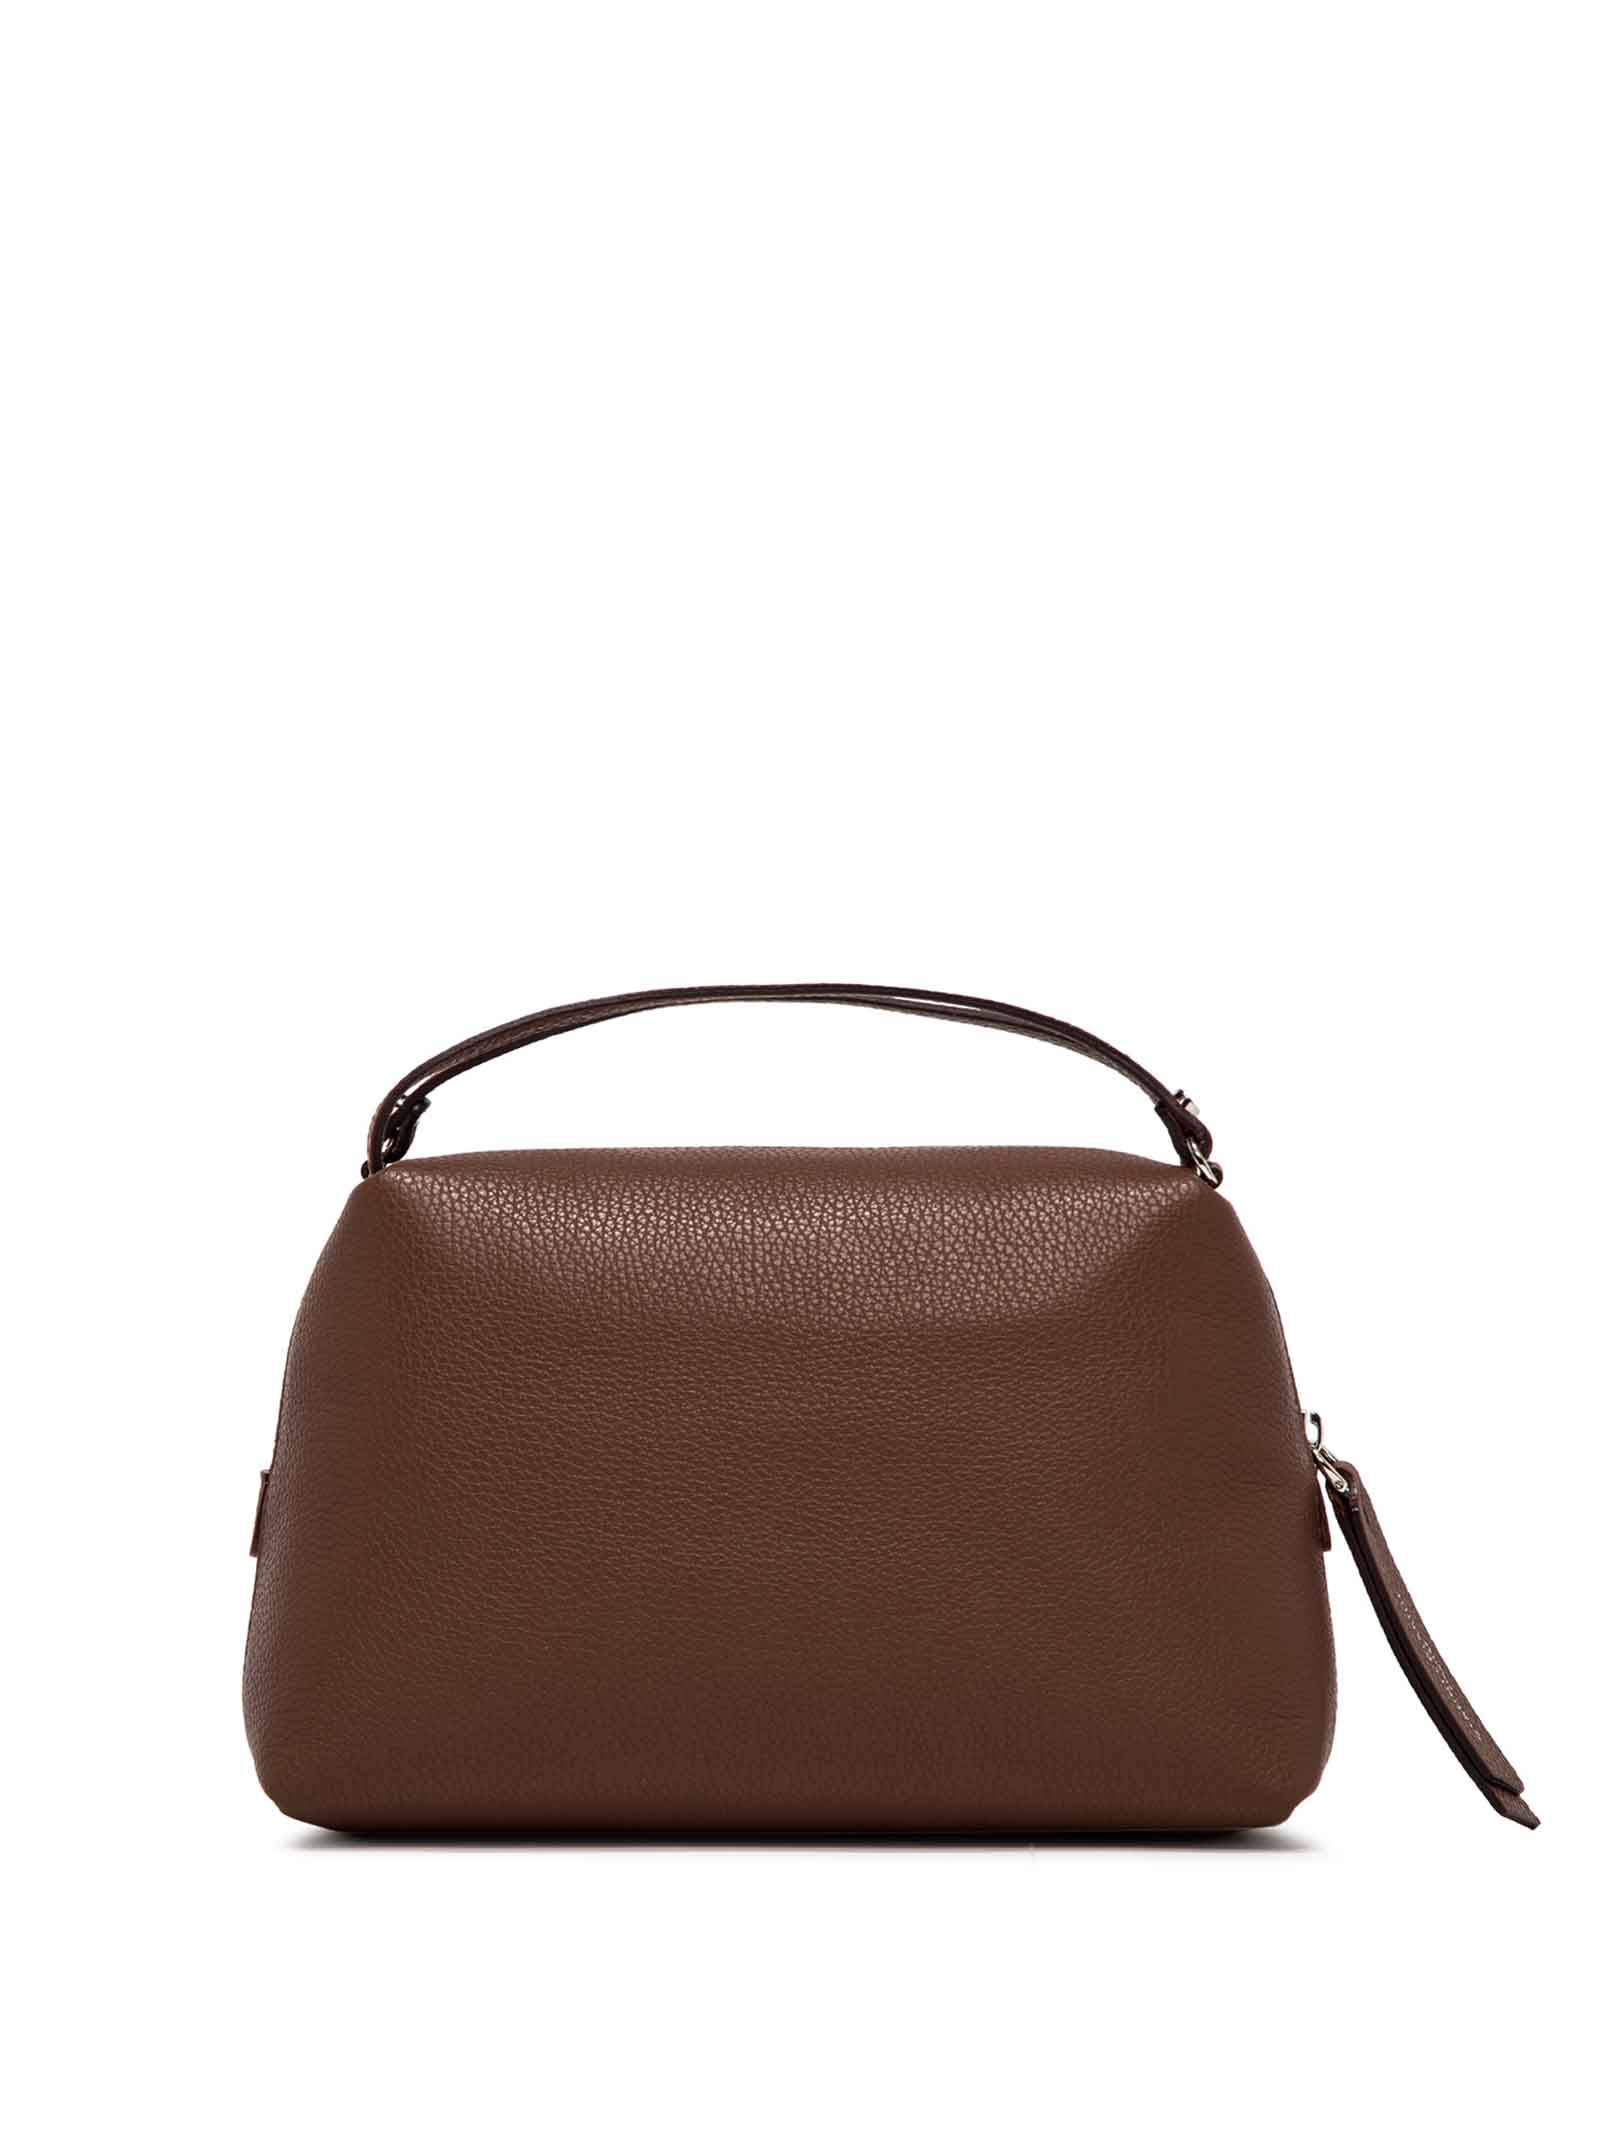 Women's Bag Clutch Maxi Alifa In Brown Leather With Adjustable And Detachable Cross-body Strap Gianni Chiarini | Bags and backpacks | BS81483423